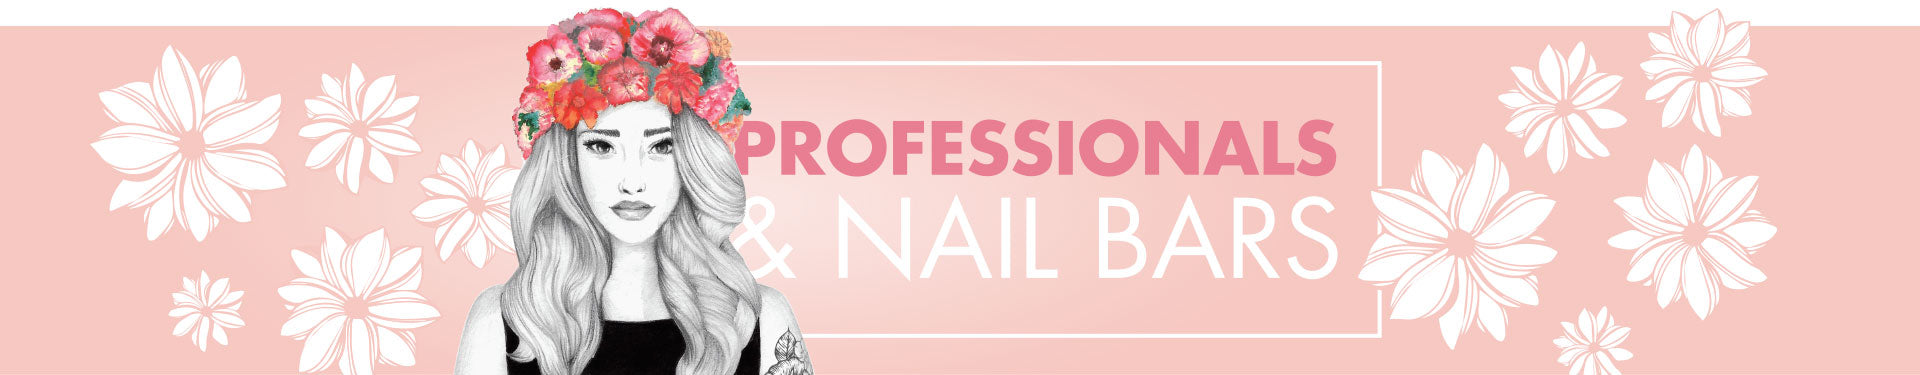 Nail Bars and Professionals